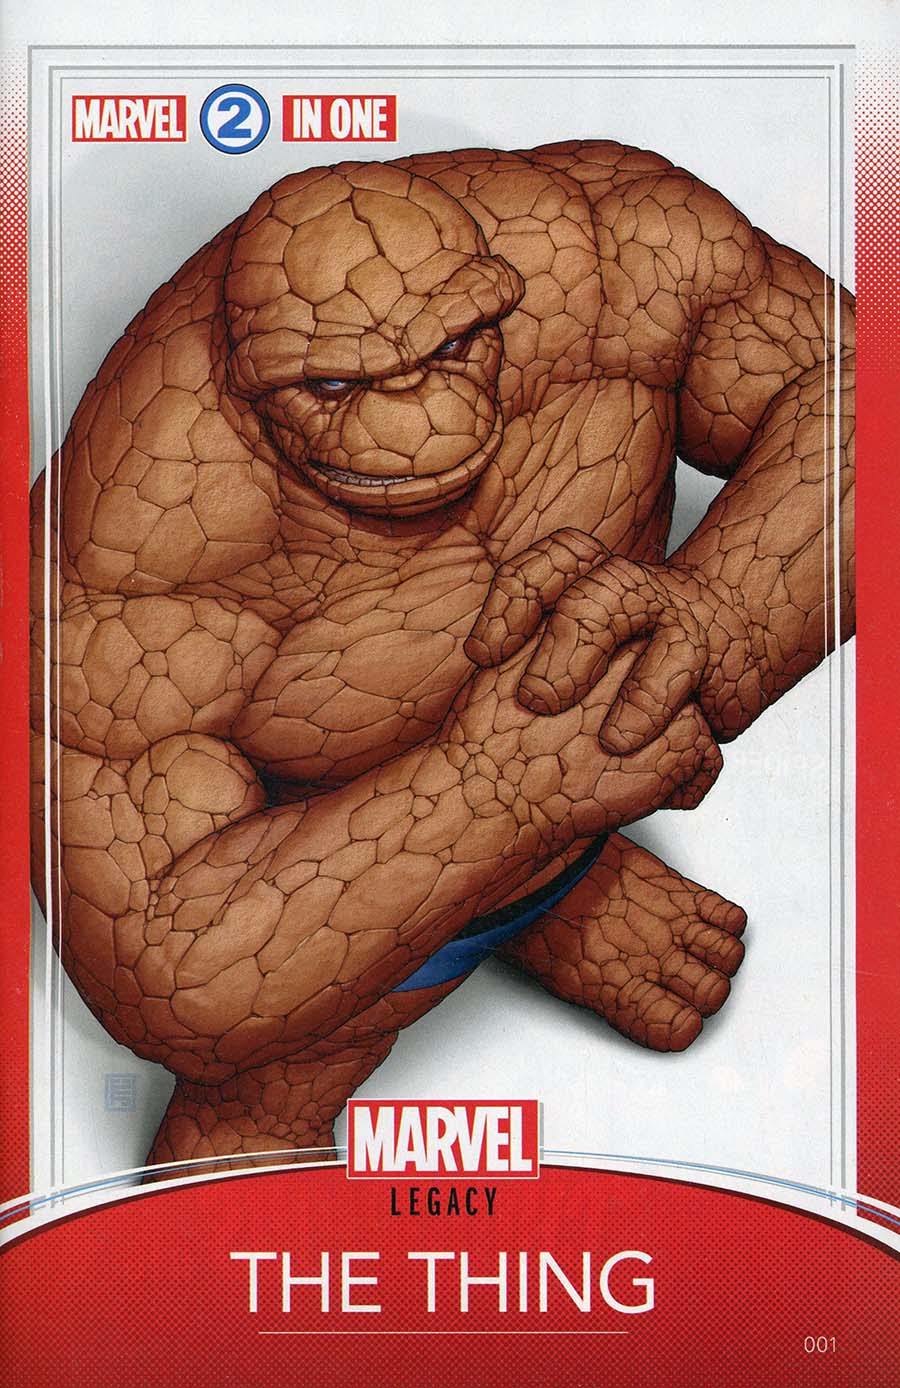 Marvel Two-In-One Vol 3 #1 Cover C Variant John Tyler Christopher Trading Card Cover (Marvel Legacy Tie-In)